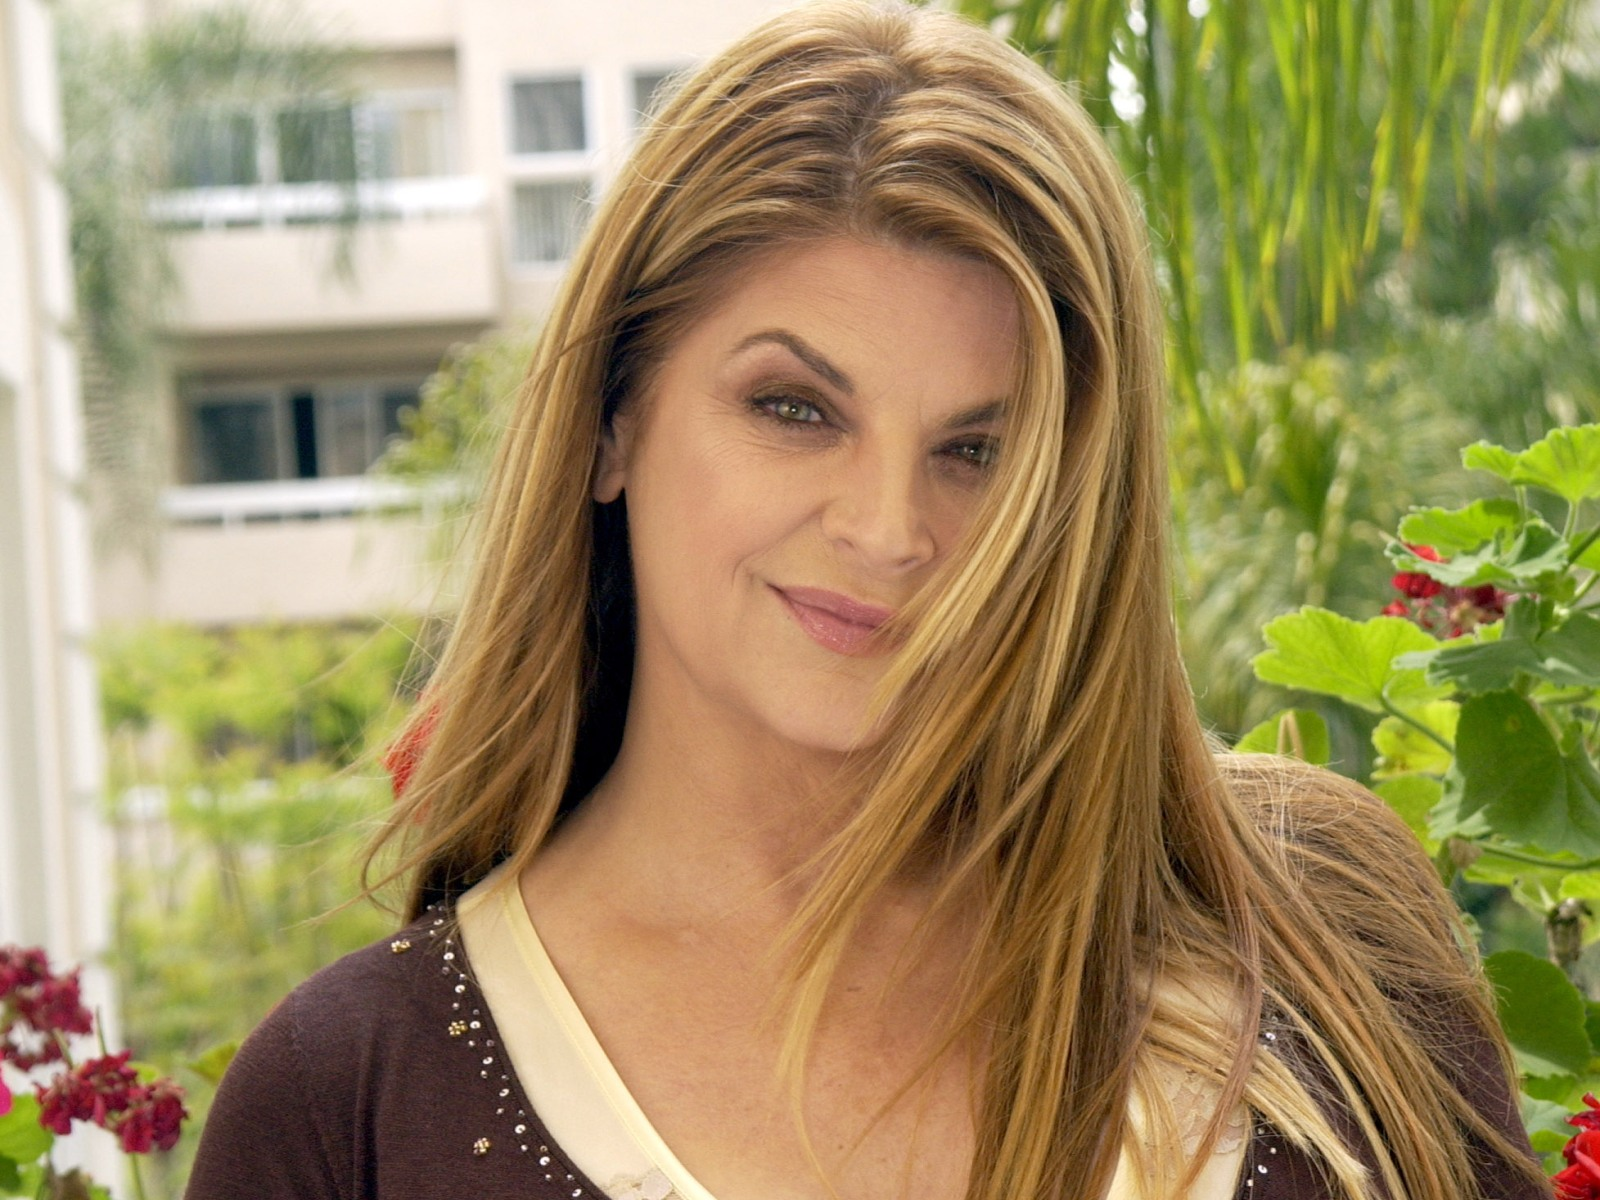 kirstie alley photo 6 of 34 pics  wallpaper